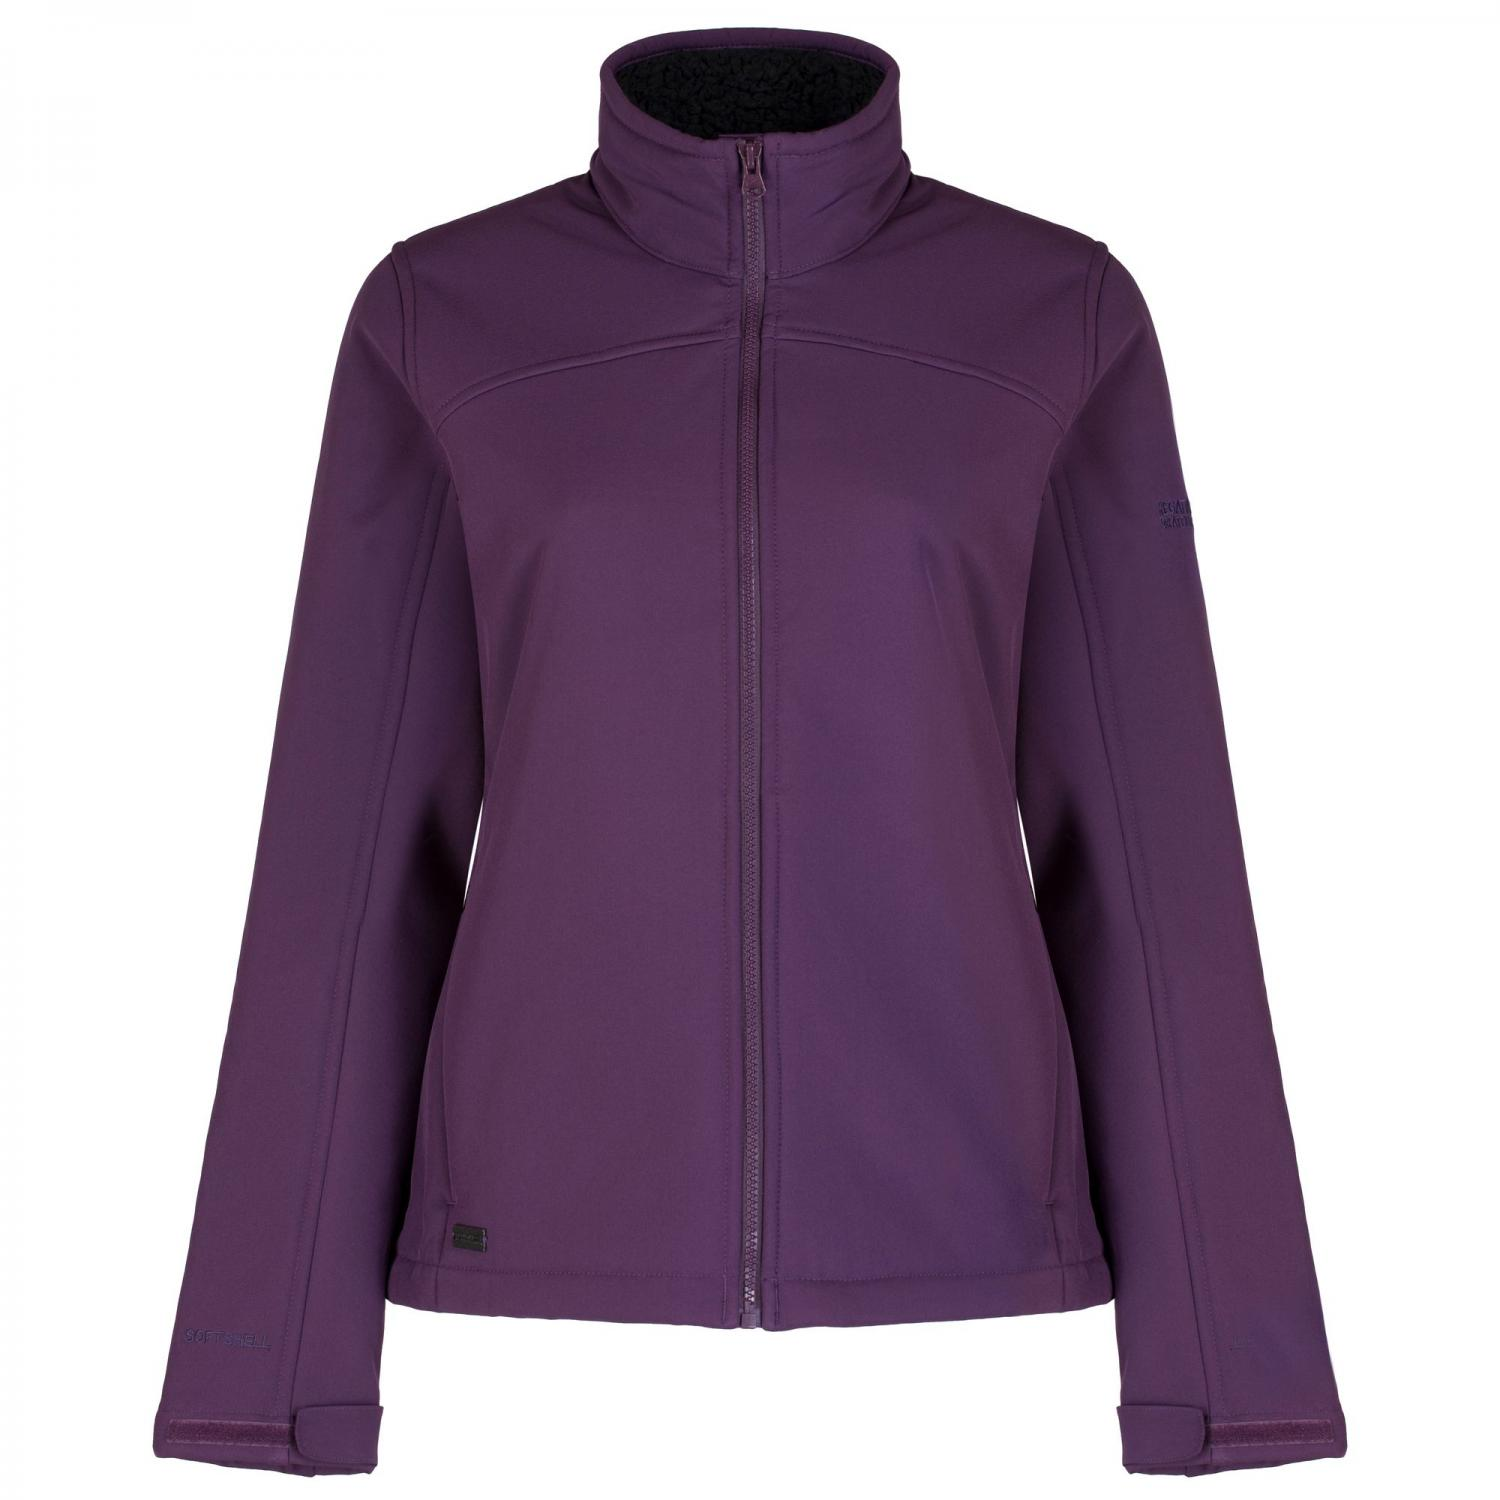 Tulsie Softshell Jacket Blackberry Wine